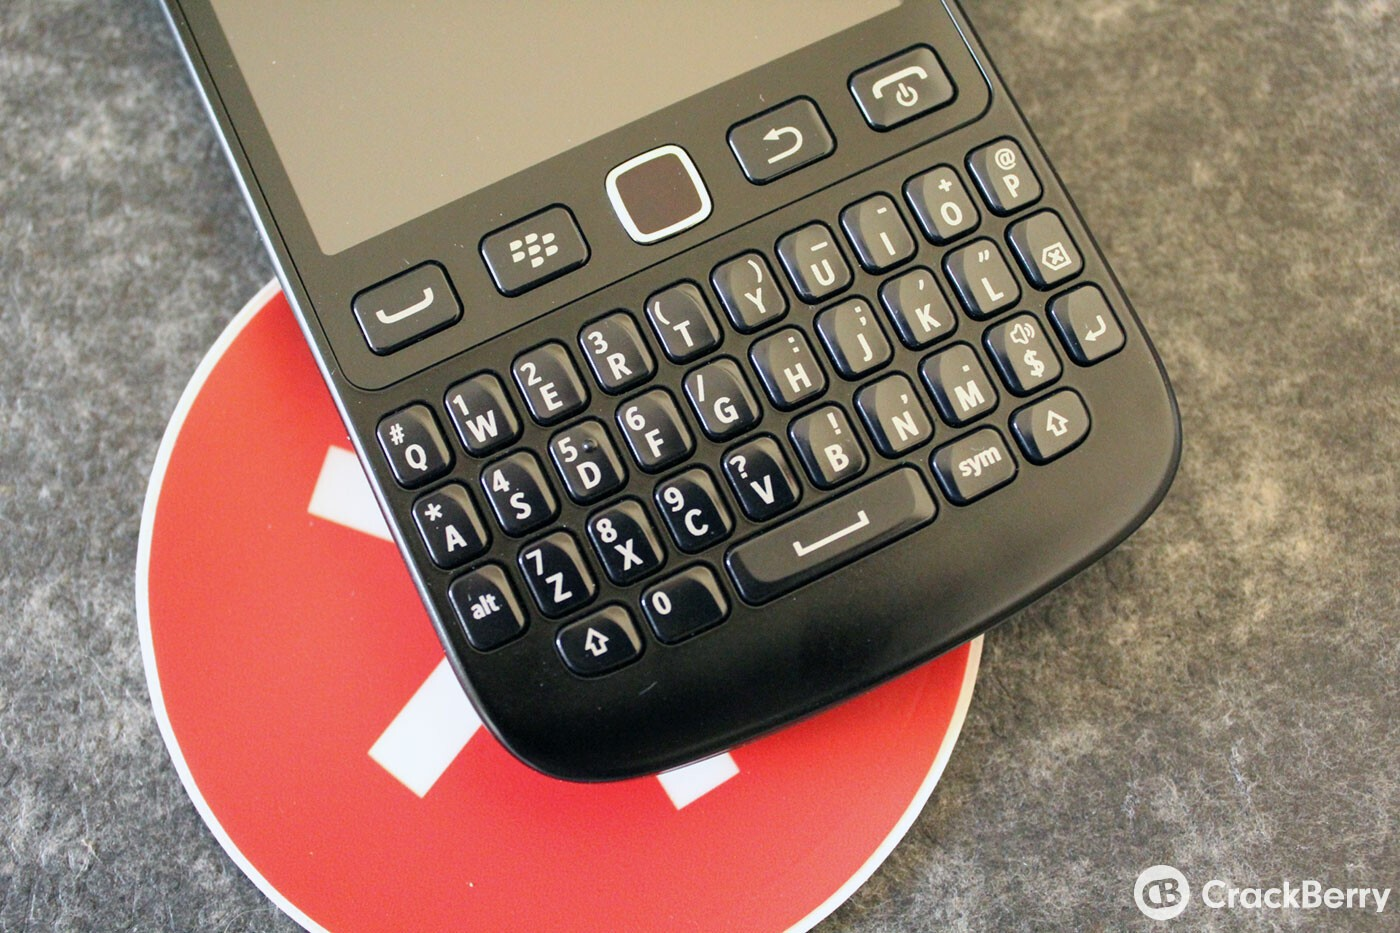 BlackBerry 9720 Keyboard